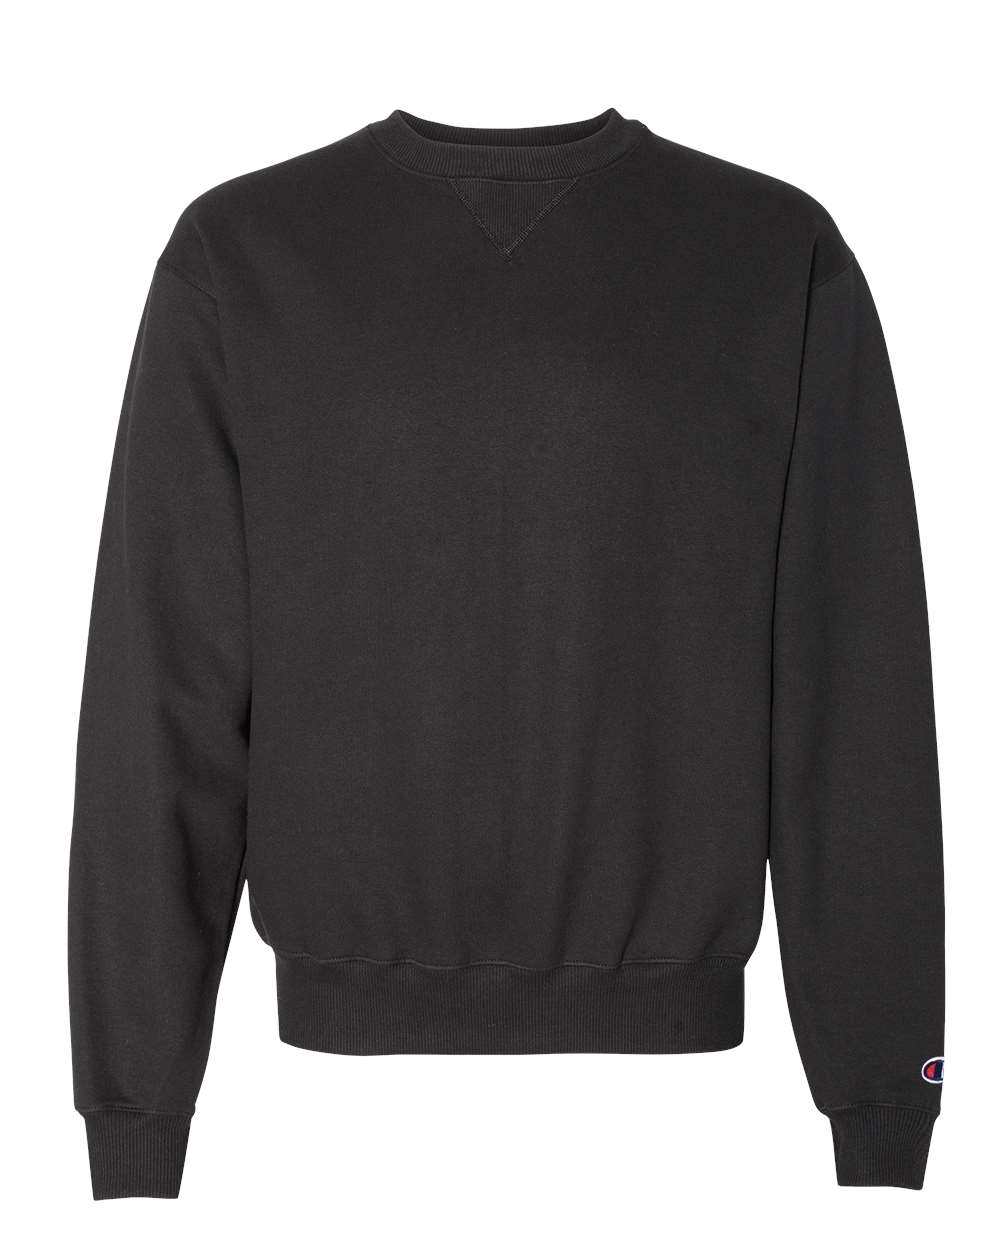 Champion-Mens-Cotton-Max-Crewneck-Sweatshirt-Pullover-S178-up-to-3XL miniature 6